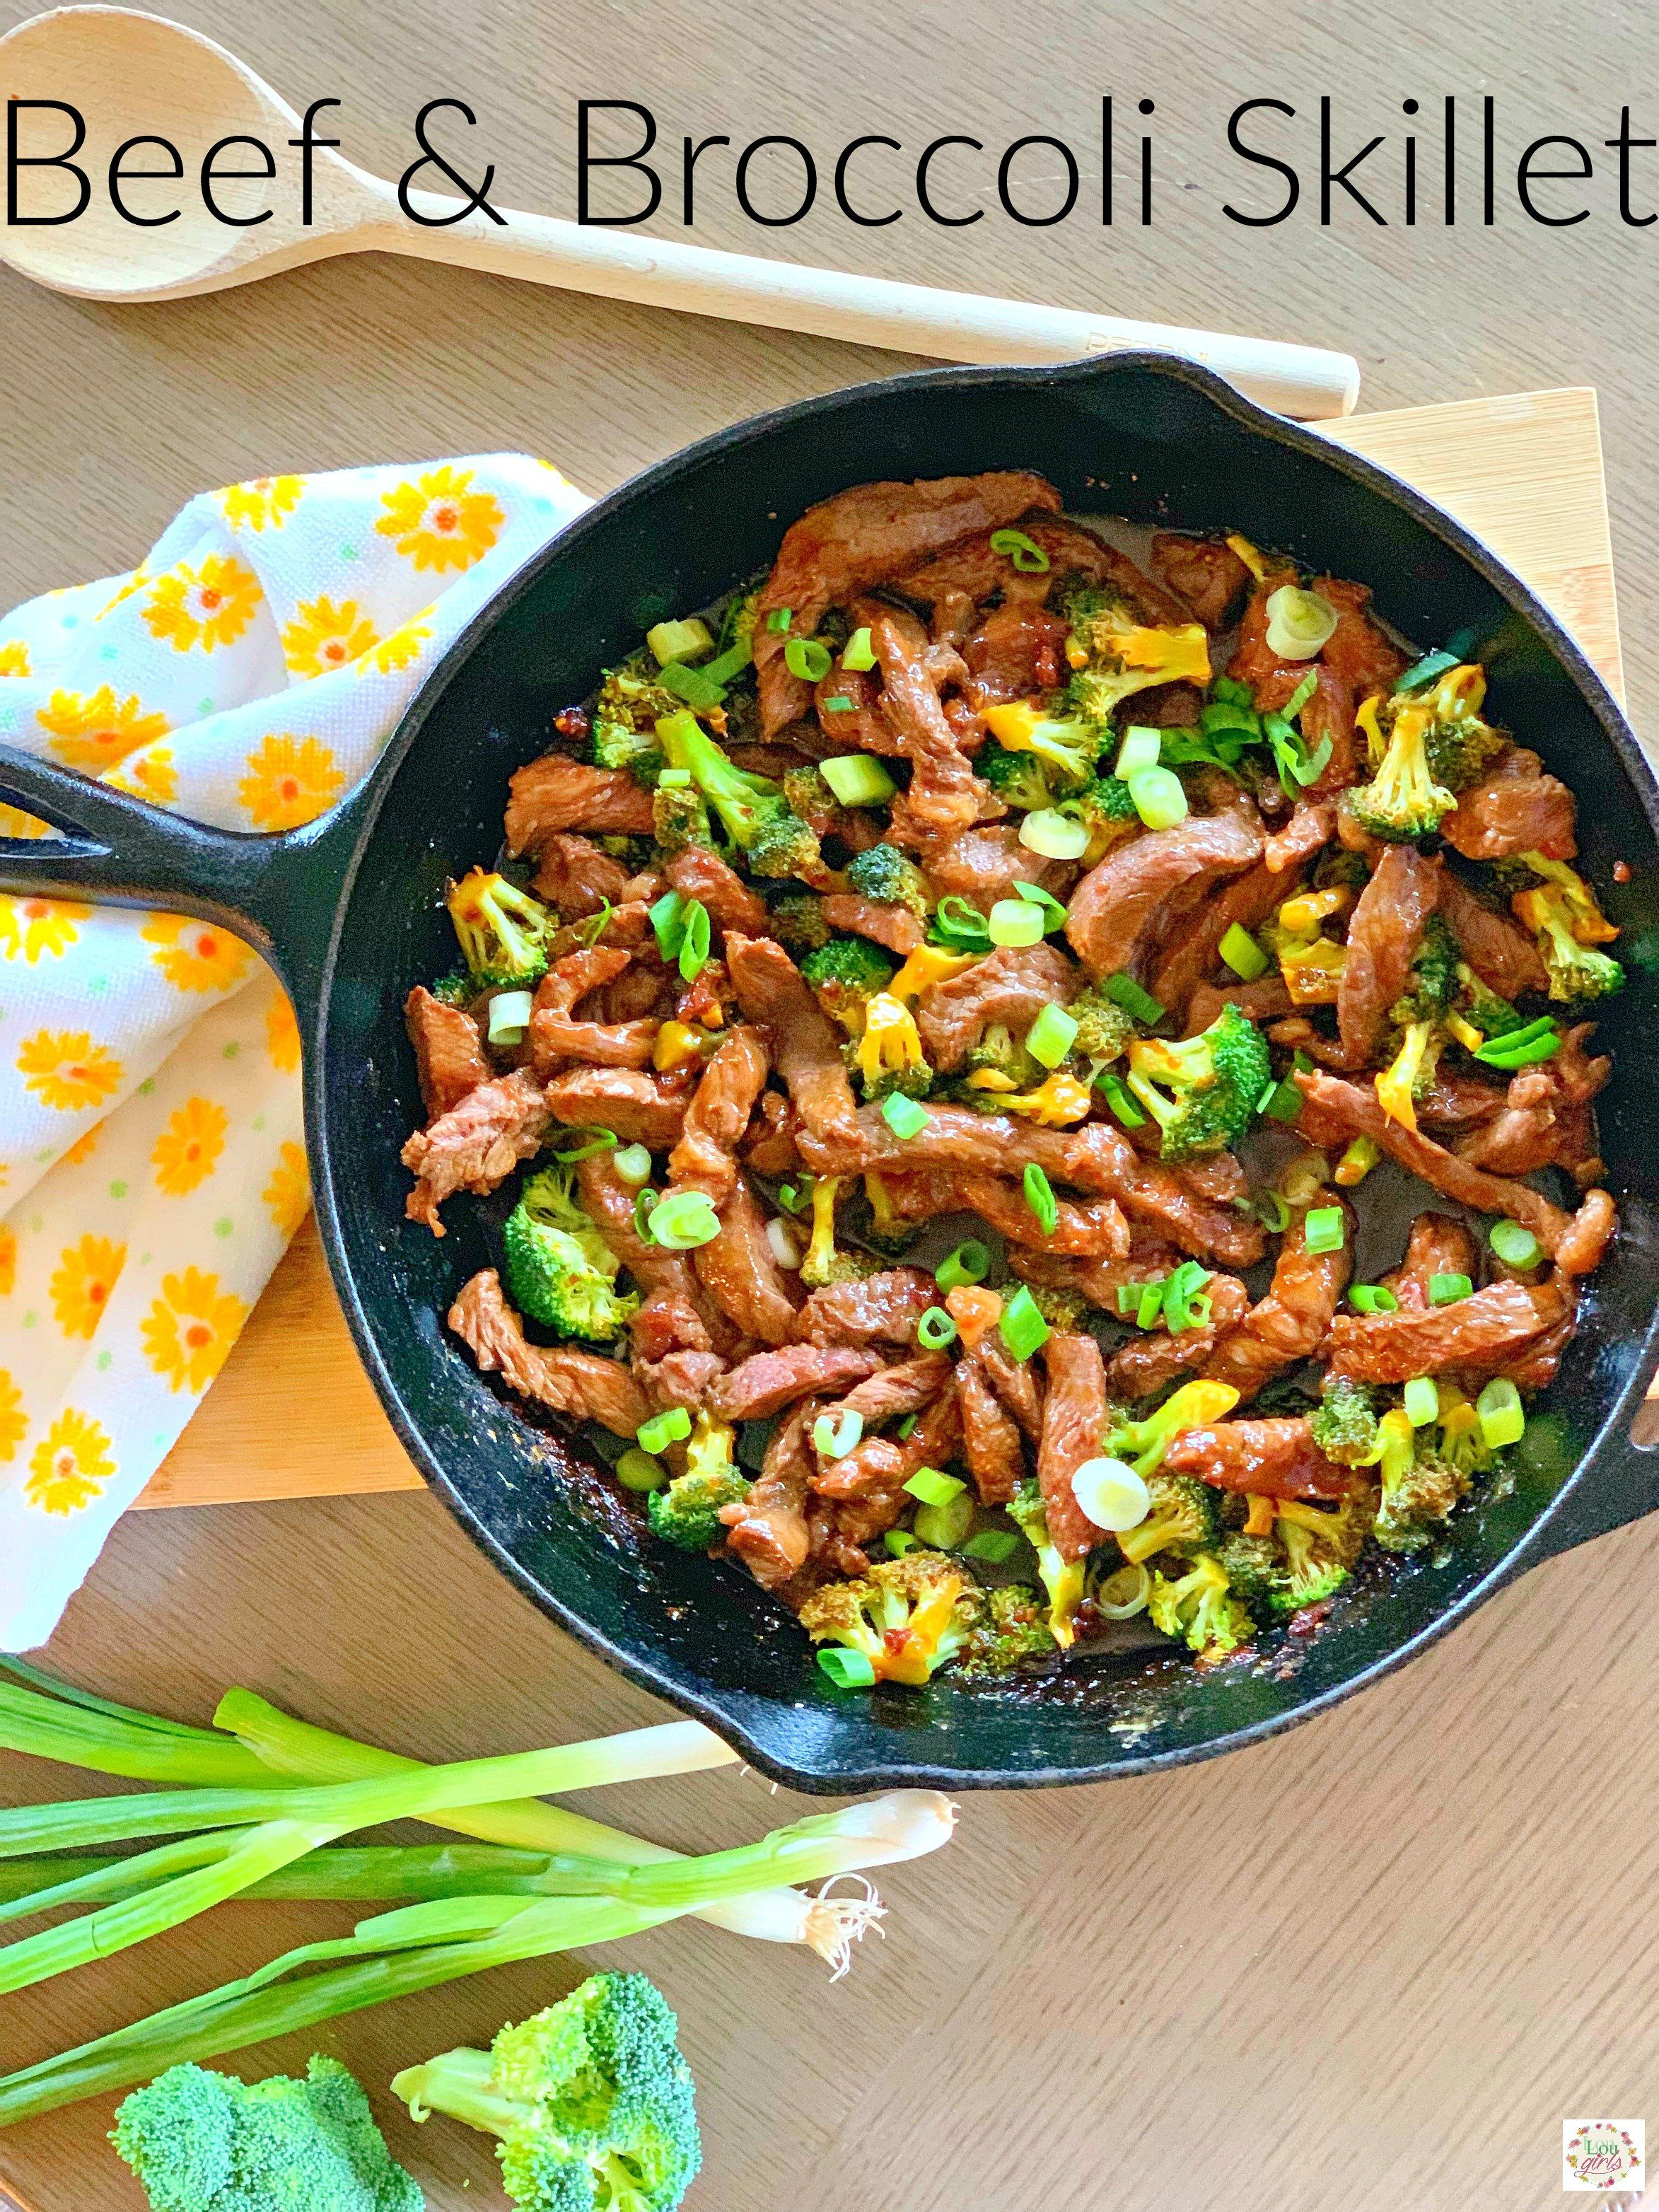 Beef and Broccoli Skillet #beefandbroccoli